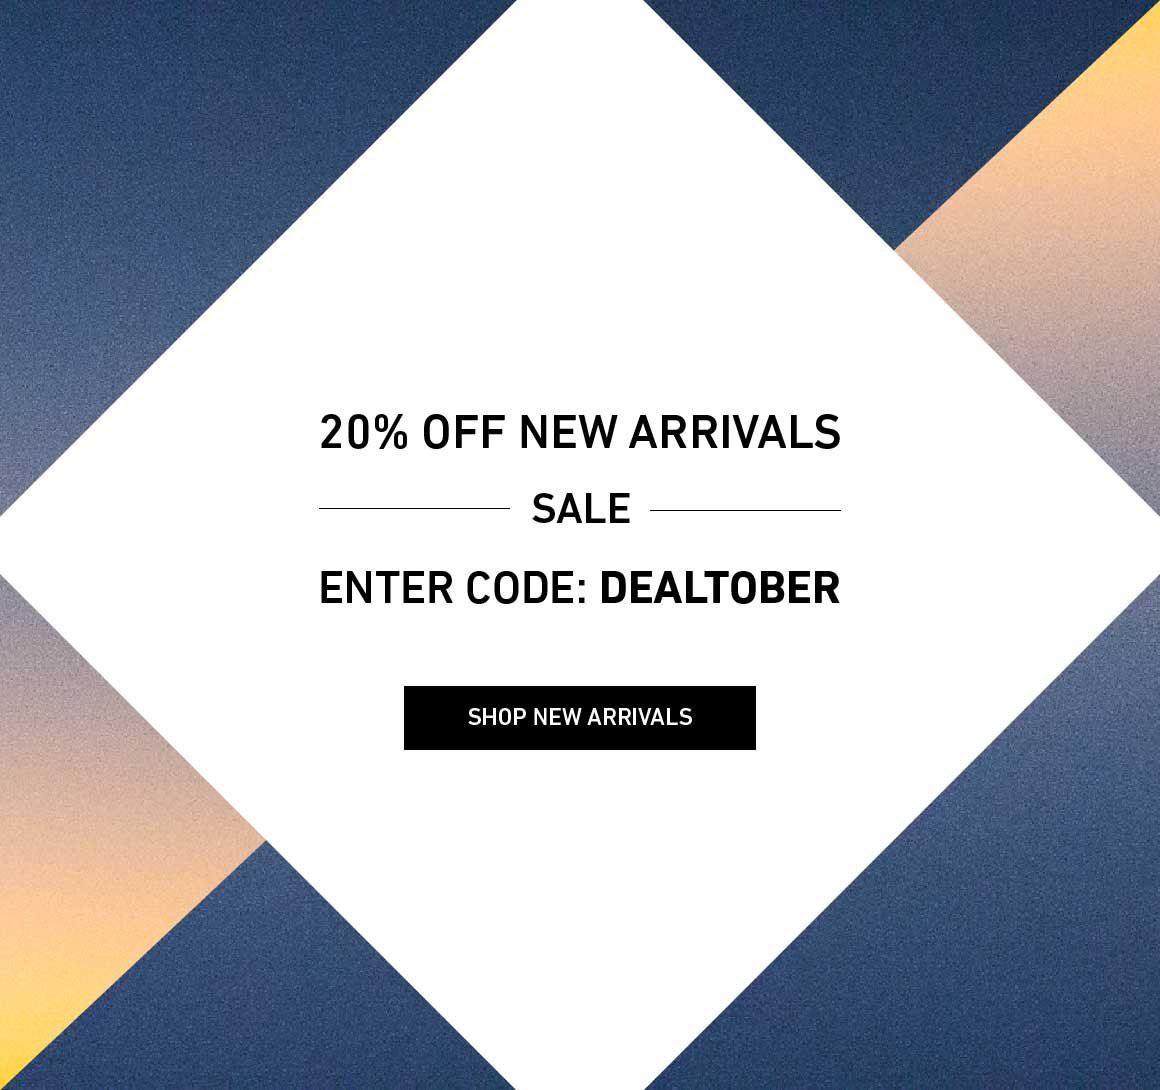 20% Off New Arrivals. Enter Code: DEALTOBER